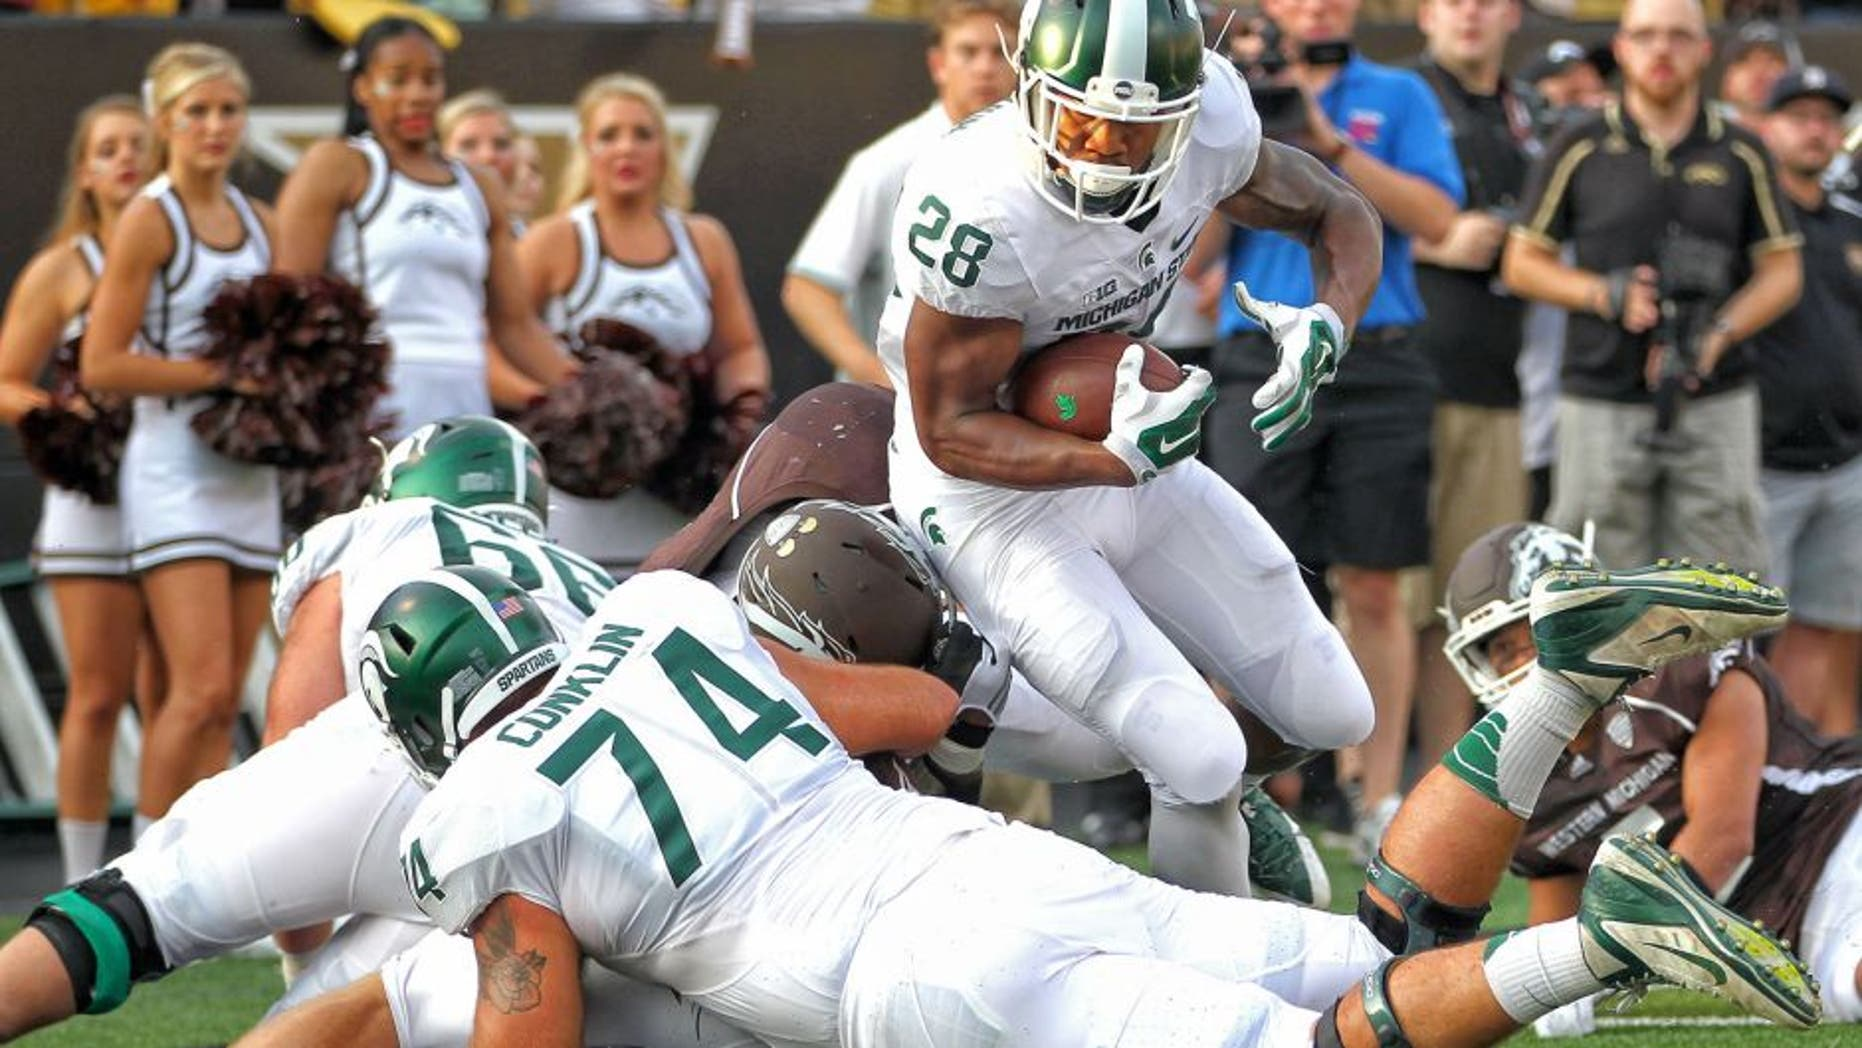 Sep 4, 2015; Kalamazoo, MI, USA; Michigan State Spartans running back Madre London (28) runs the ball against the Western Michigan Broncos prior to a game at Waldo Stadium. Mandatory Credit: Mike Carter-USA TODAY Sports